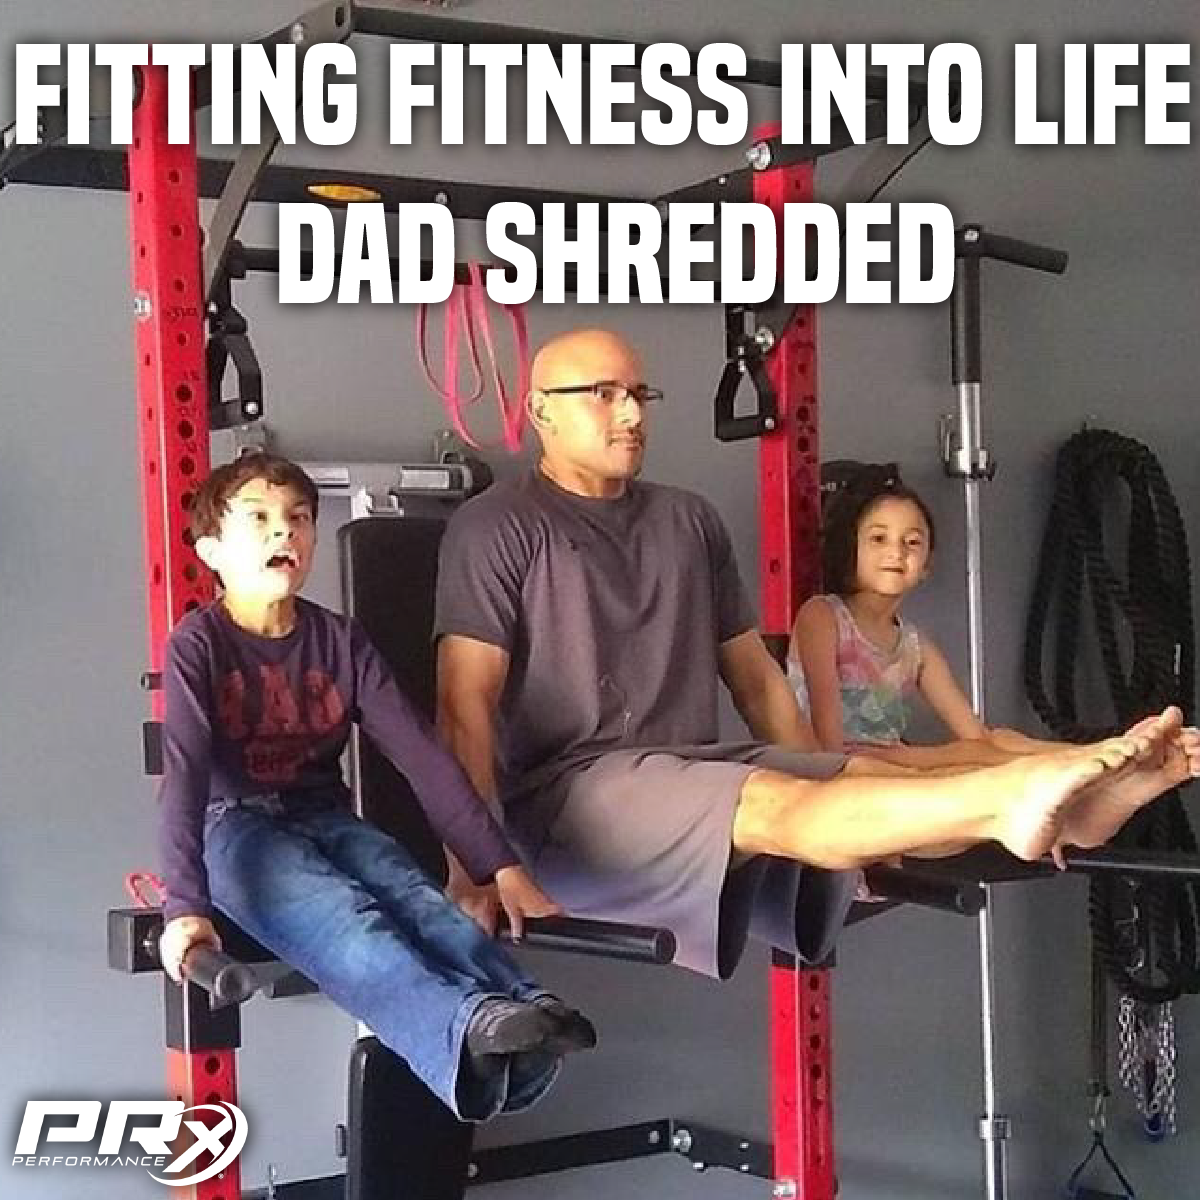 Fitting Fitness into Life: Dad Shredded